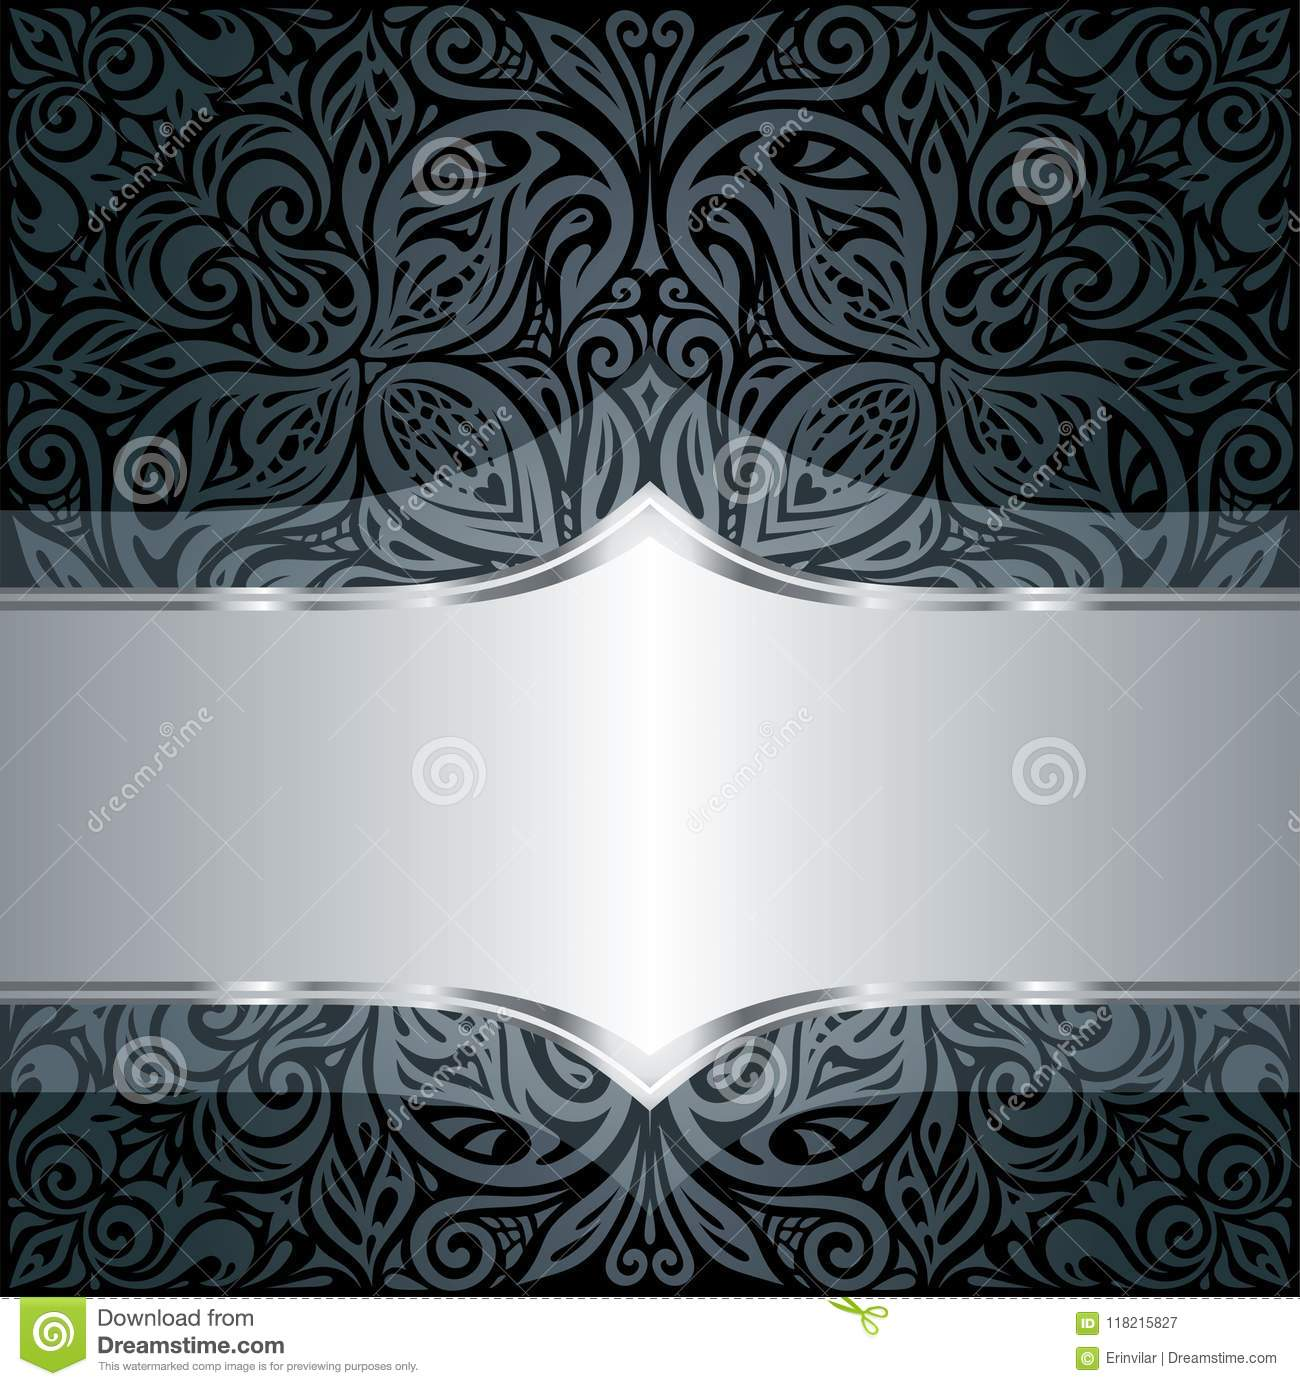 Decorative Black Silver Floral Luxury Wallpaper Background With Trendy Design